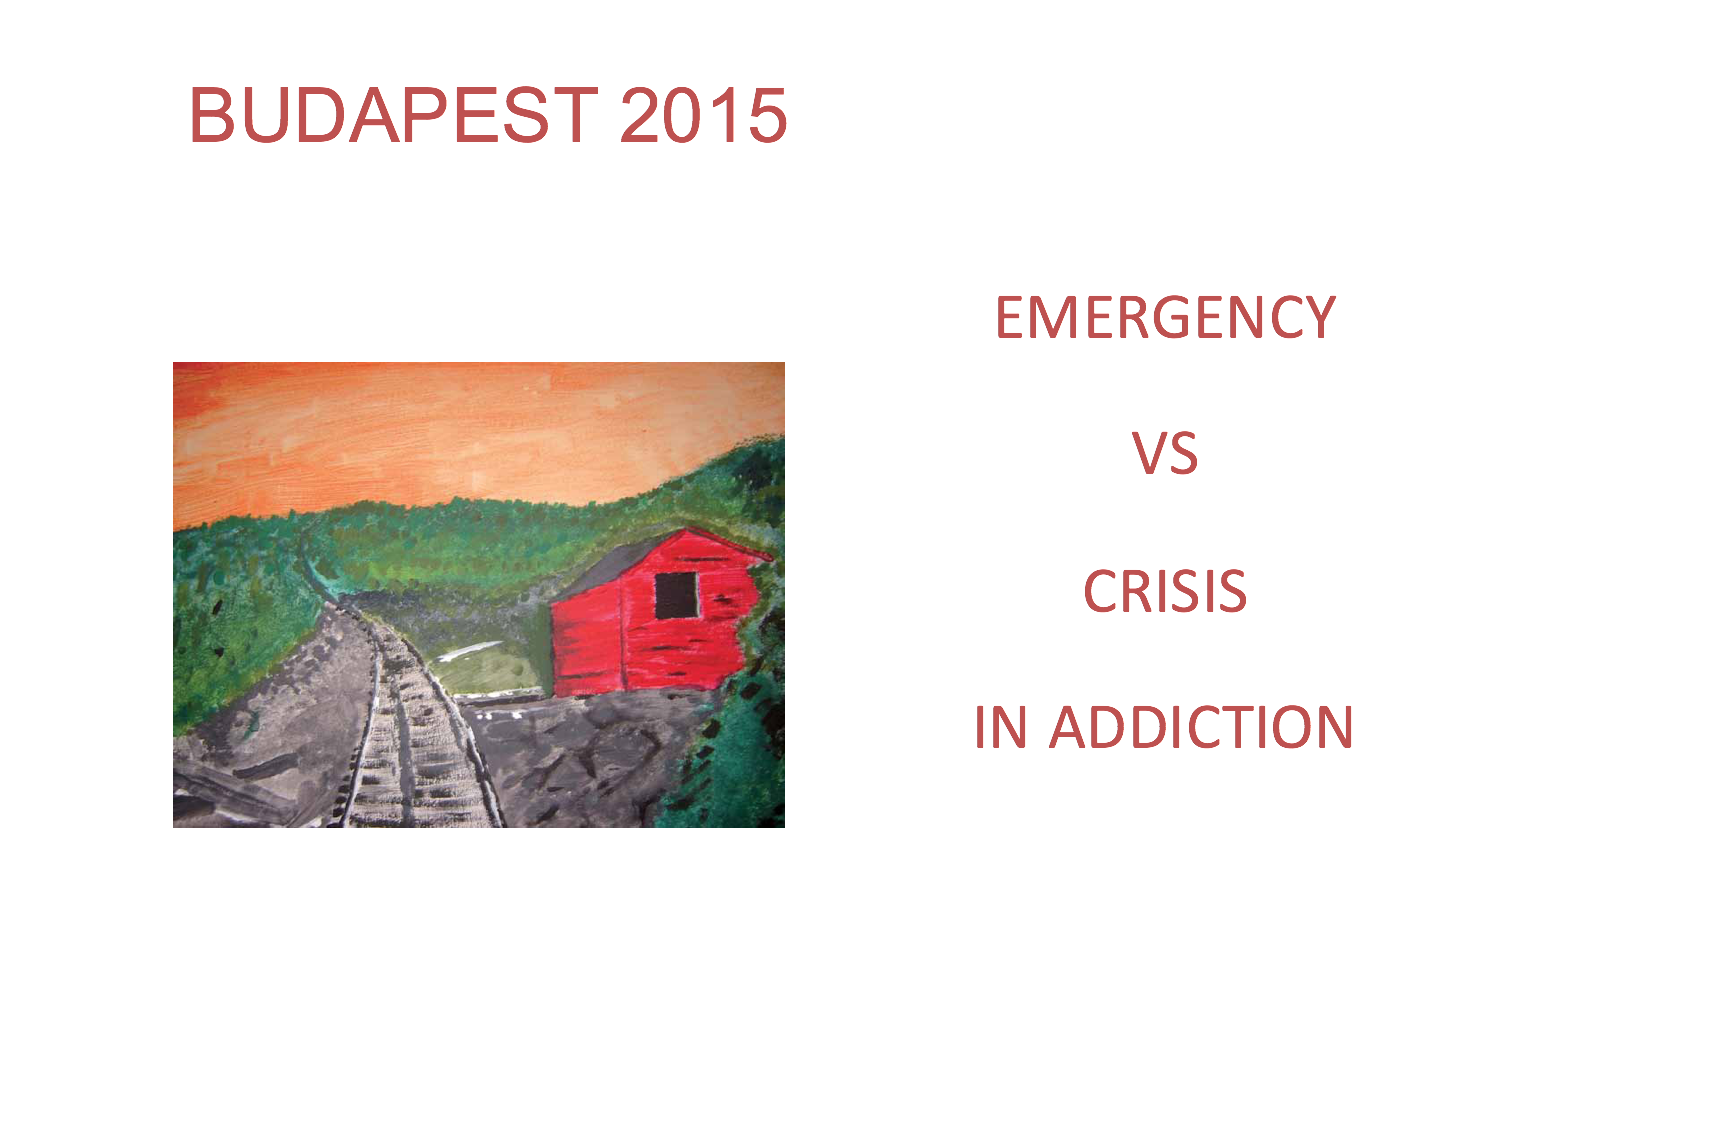 Emergency vs Crisis in addiction